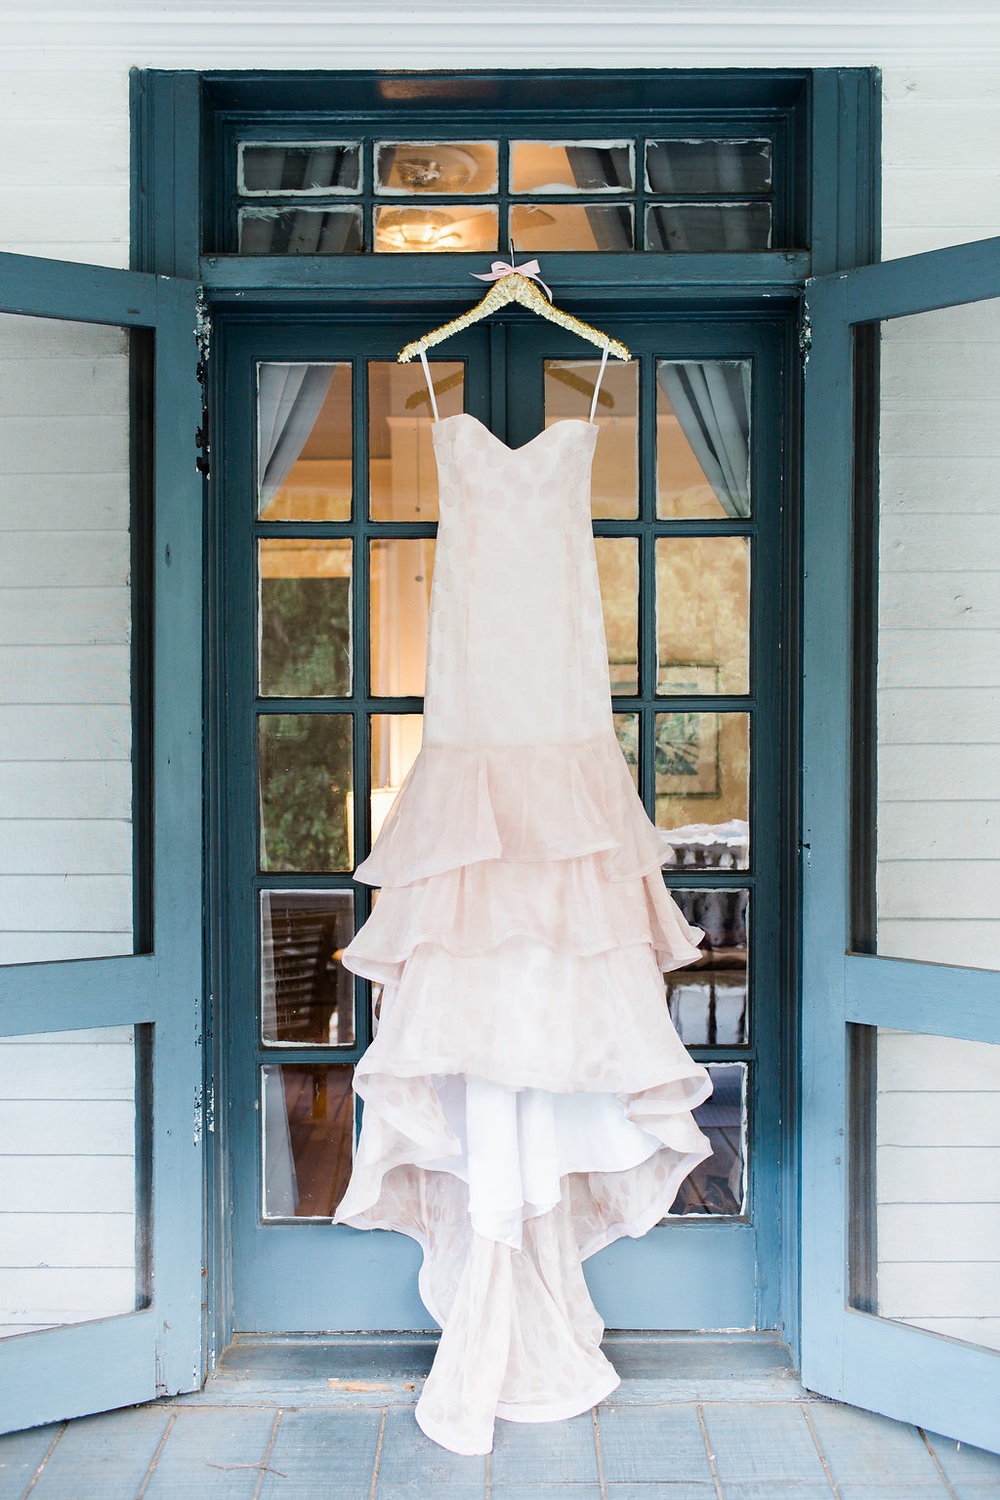 eve-pat-apt-b-photography-Jacklynn-bridal-blush-wedding-dress-polka-dot-wedding-dress-ivory-and-beau-bridal-boutique-savannah-wedding-harry-potter-wedding-savannah-bridal-boutique-savannah-wedding-planner-urban-poppy-florist-soho-south-cafe-wedding-1.JPG